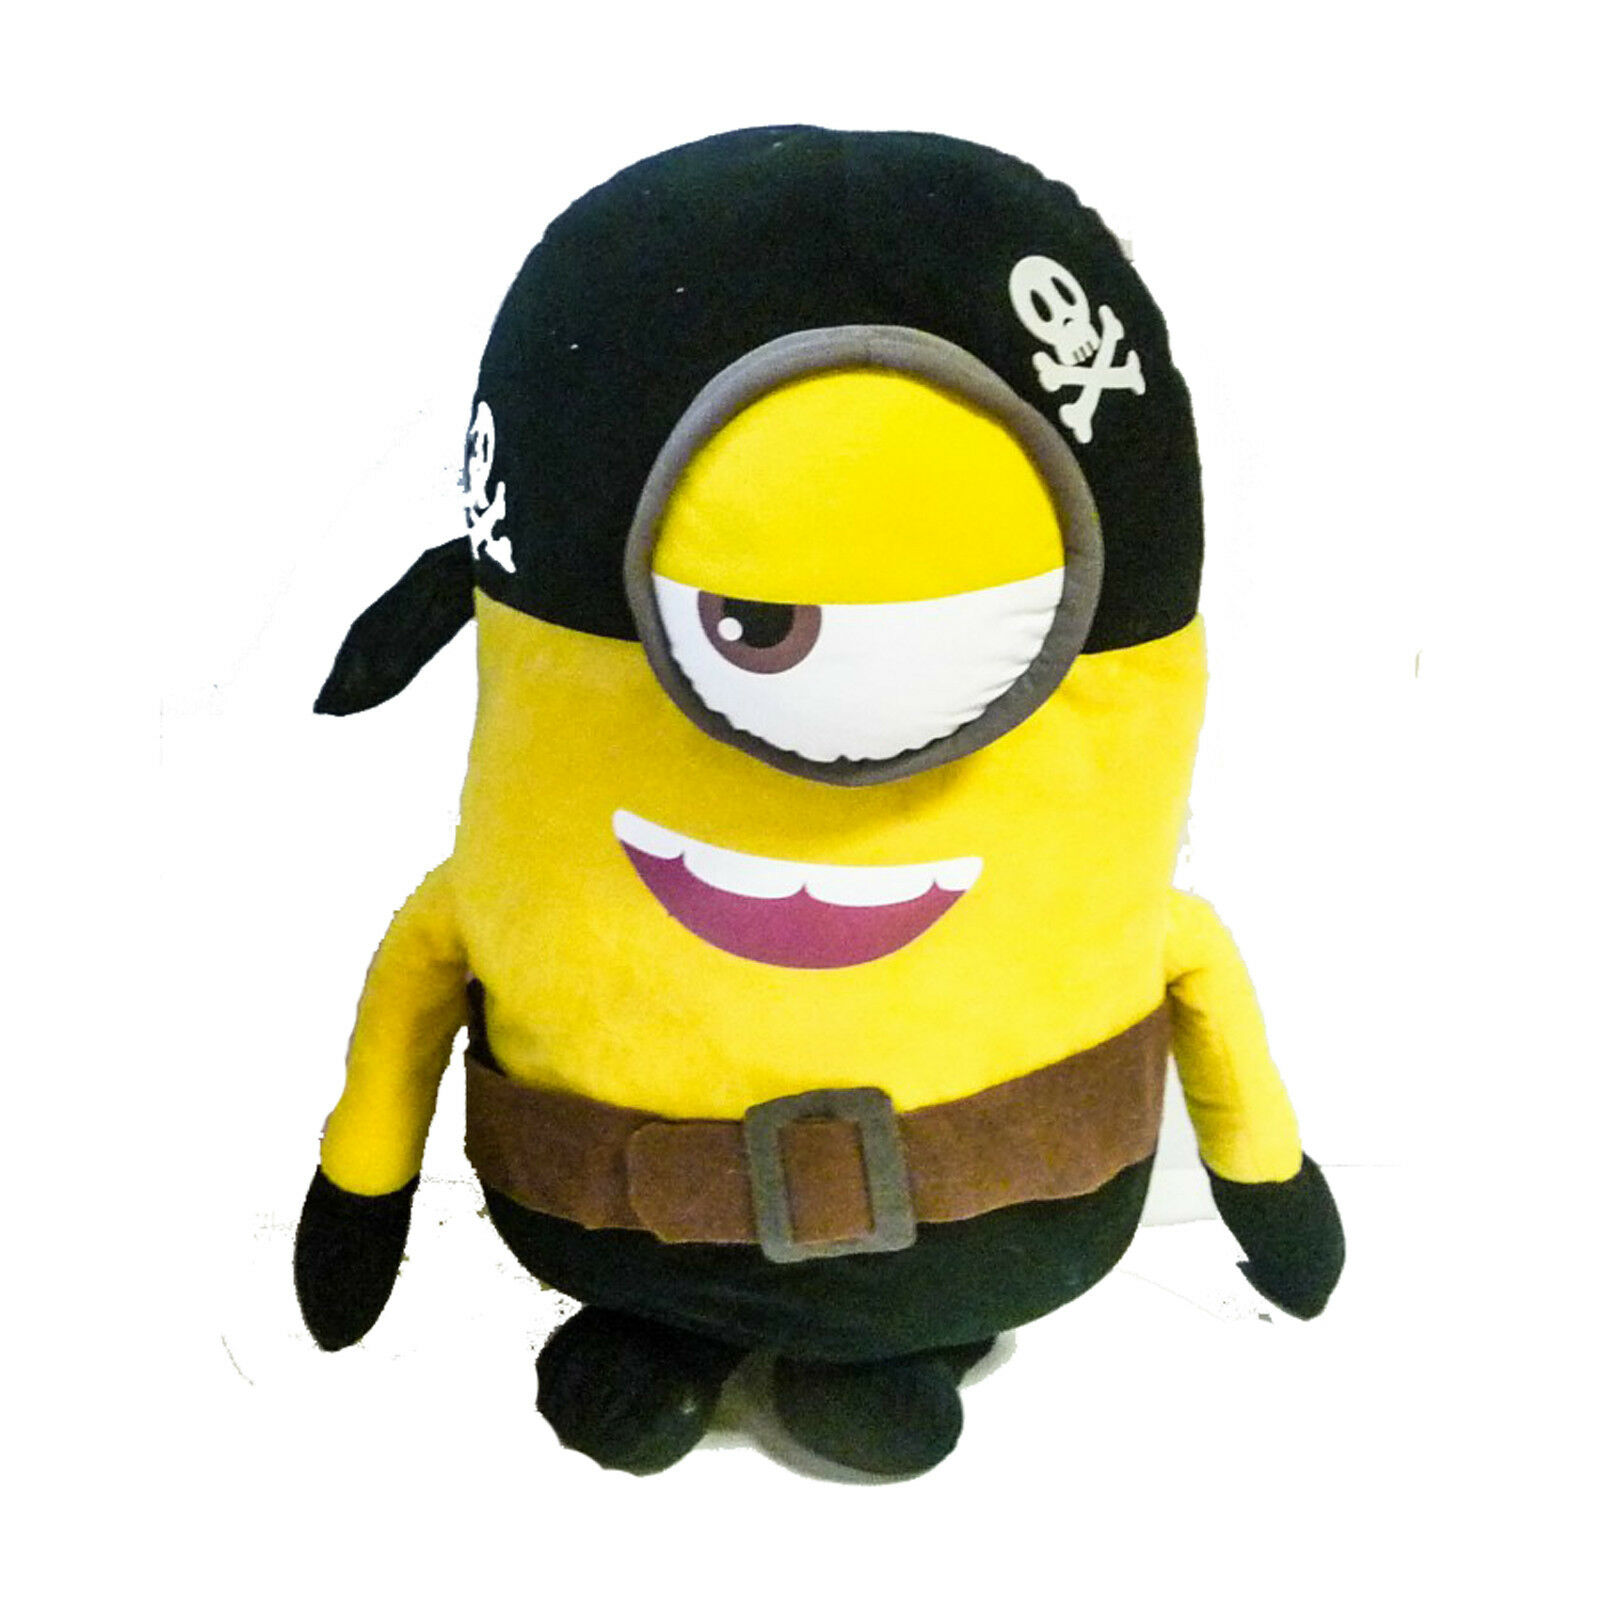 Soft toy MINIONS 38cm Pirate with eyes in fabric 3D